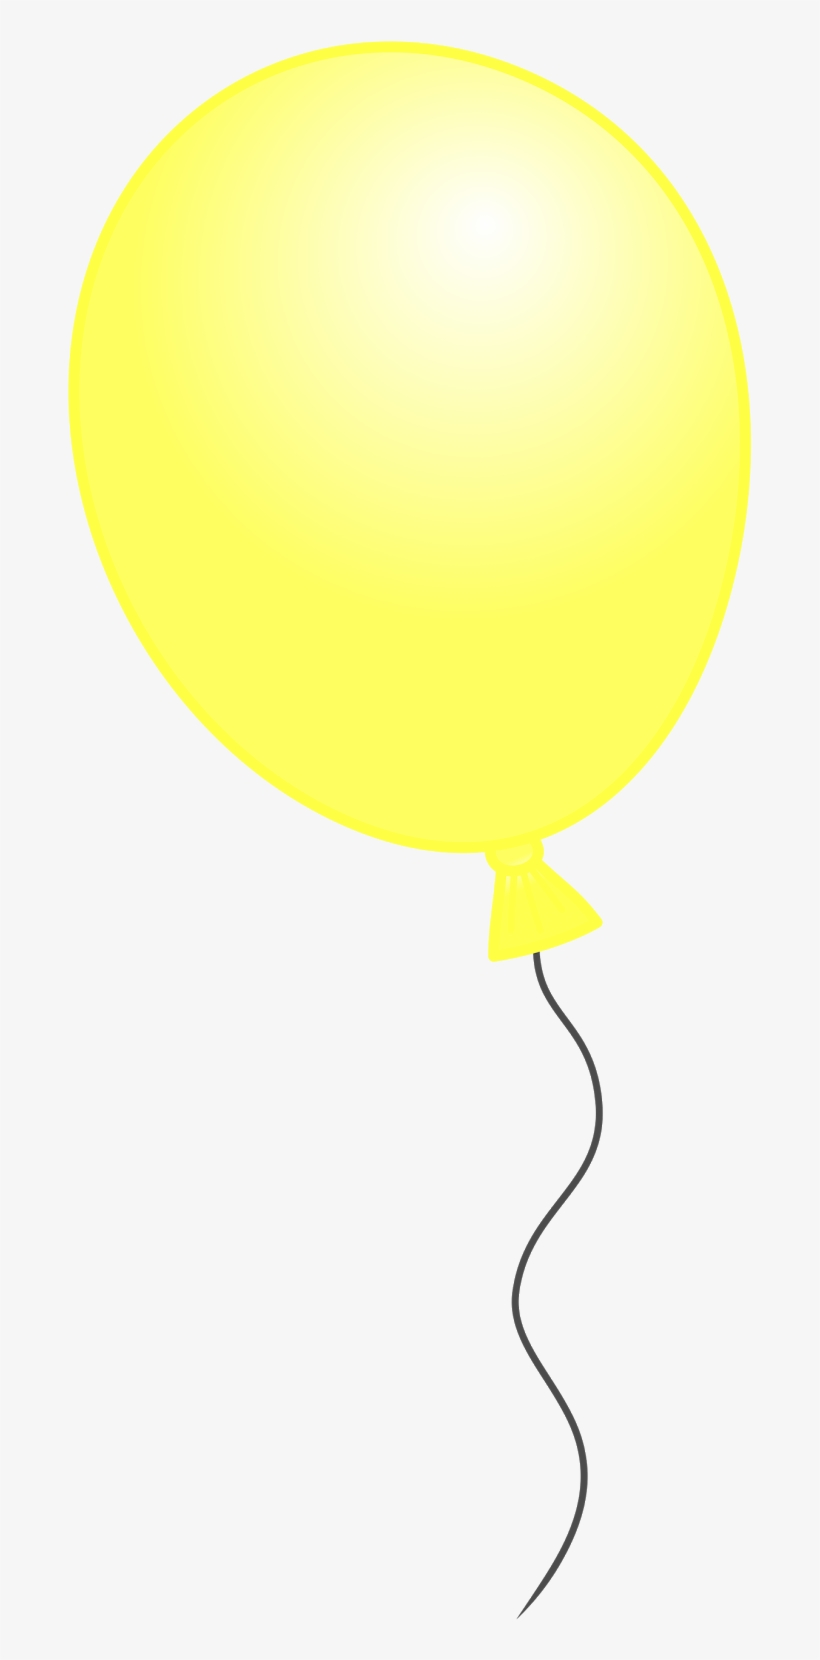 hight resolution of balloon clipart black background yellow birthday balloon png